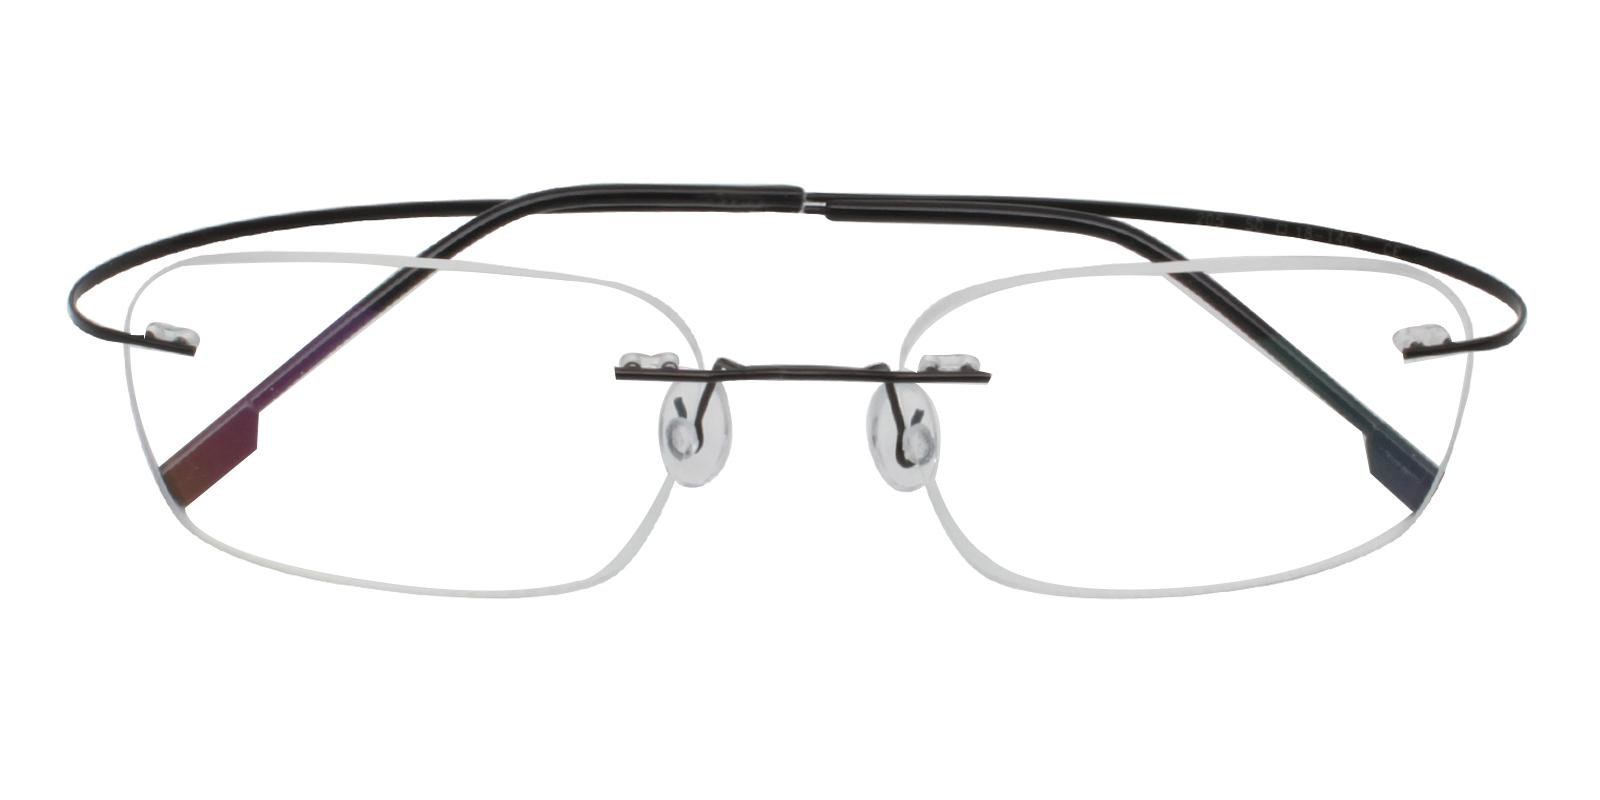 Elijah Black Metal NosePads , Eyeglasses Frames from ABBE Glasses